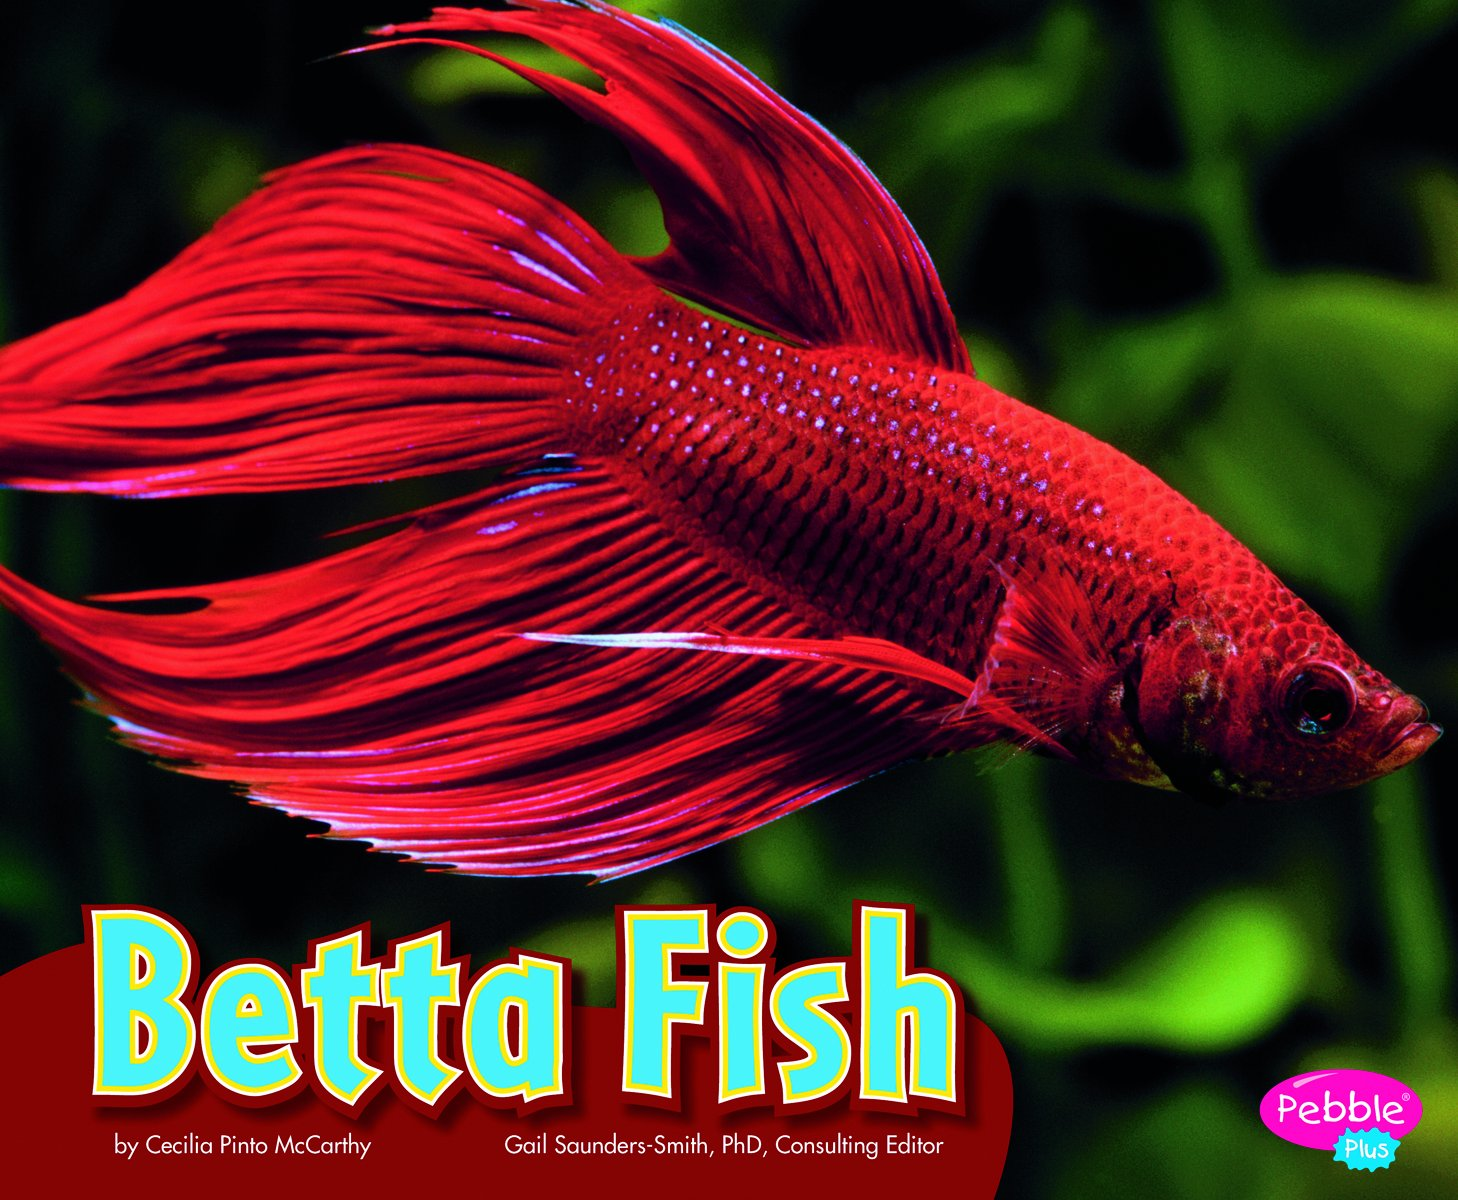 Buy Betta Fish (Pebble Plus) Book Online at Low Prices in India ...